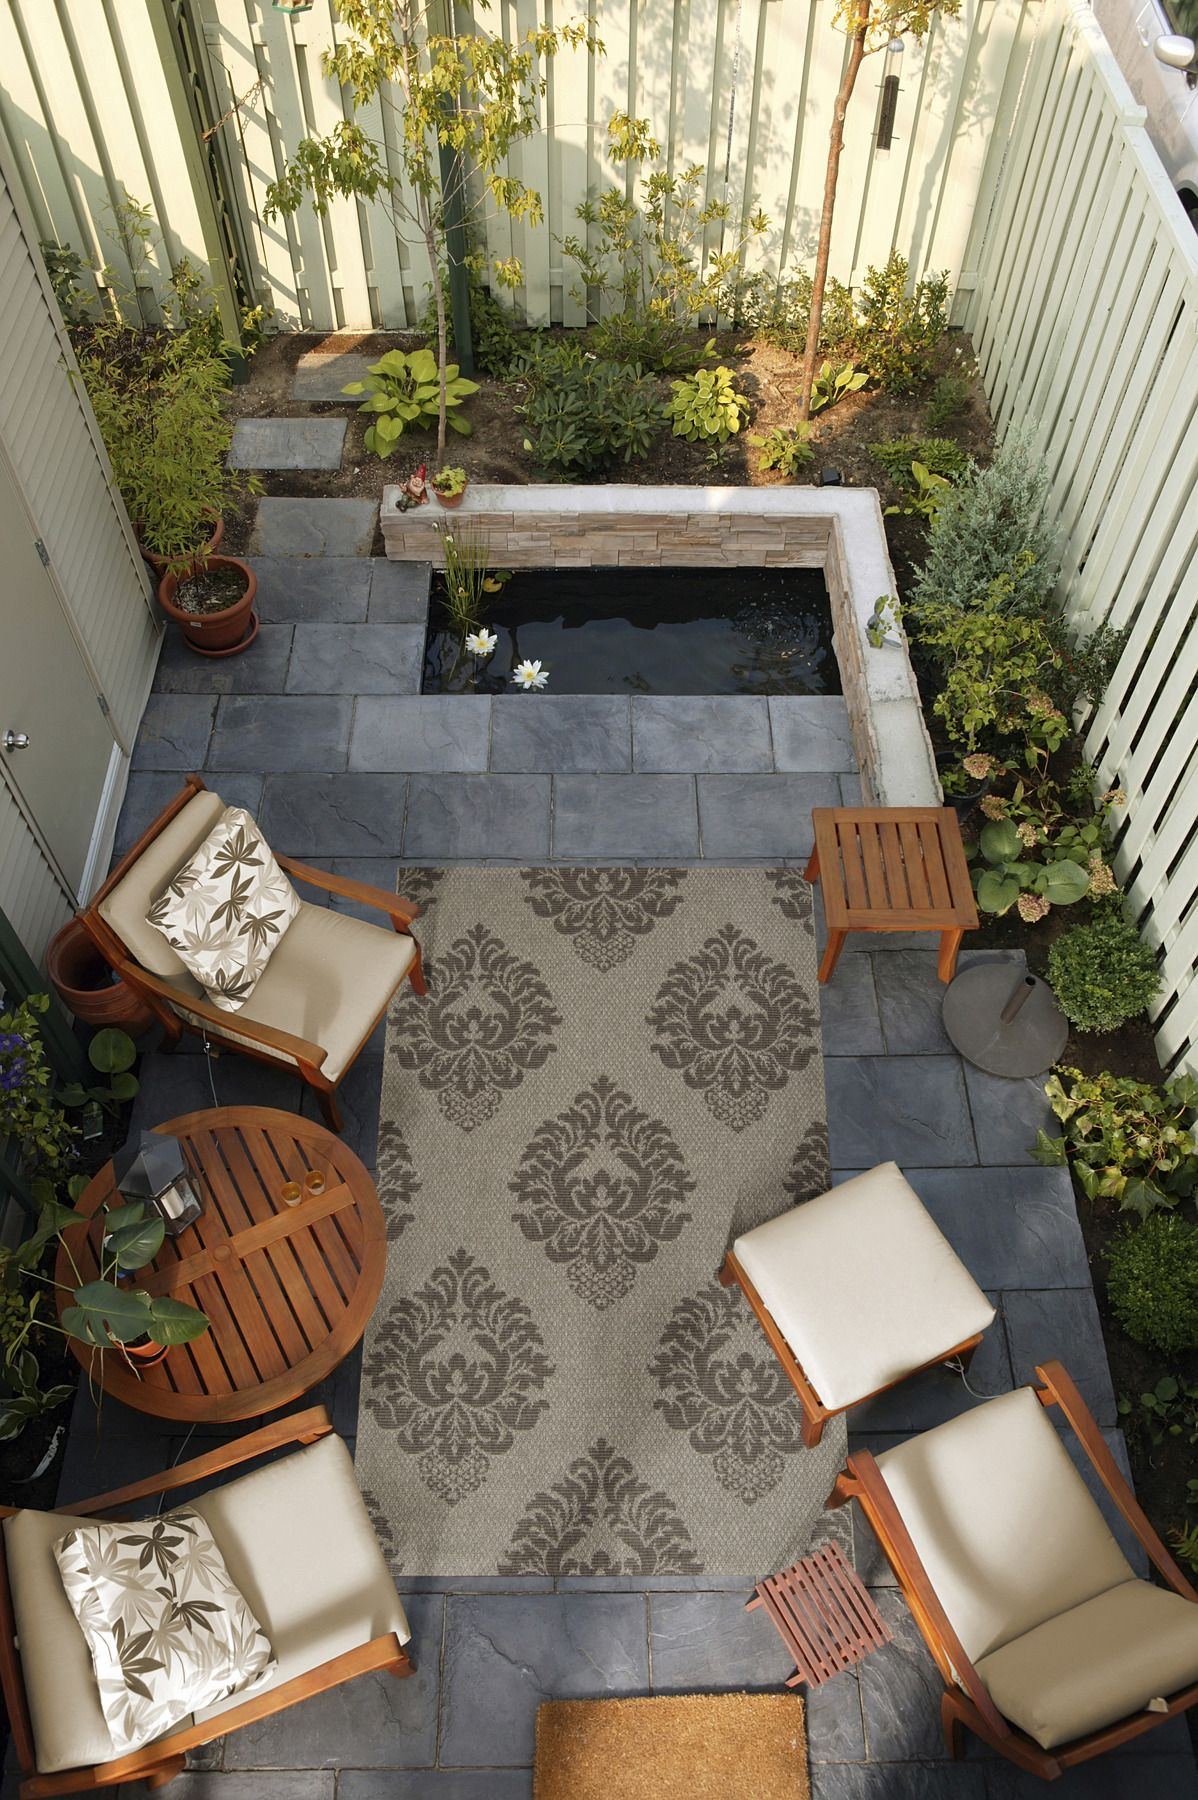 Small outdoor space brought to her by a Surya rug from the